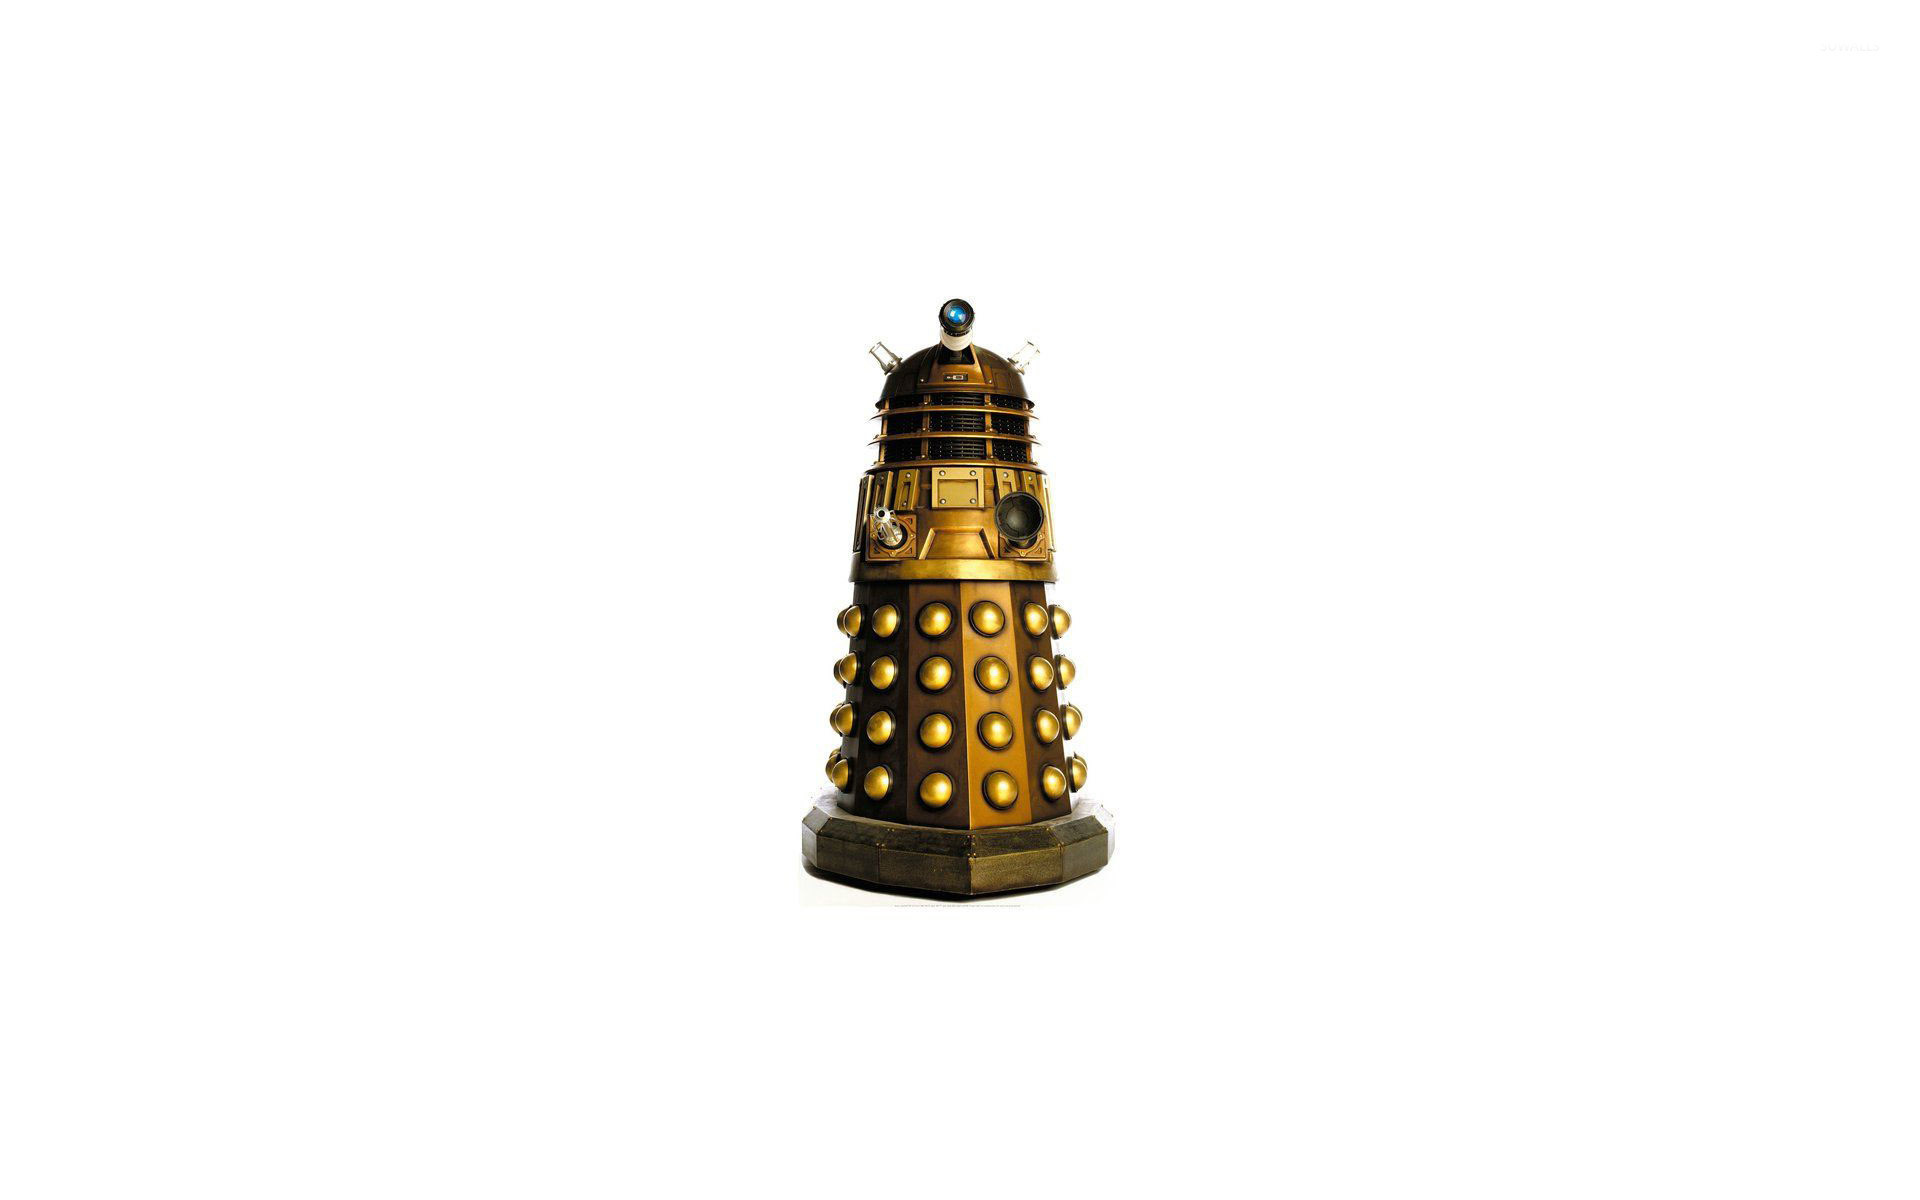 1920x1200 Dalek - Doctor Who [2] wallpaper